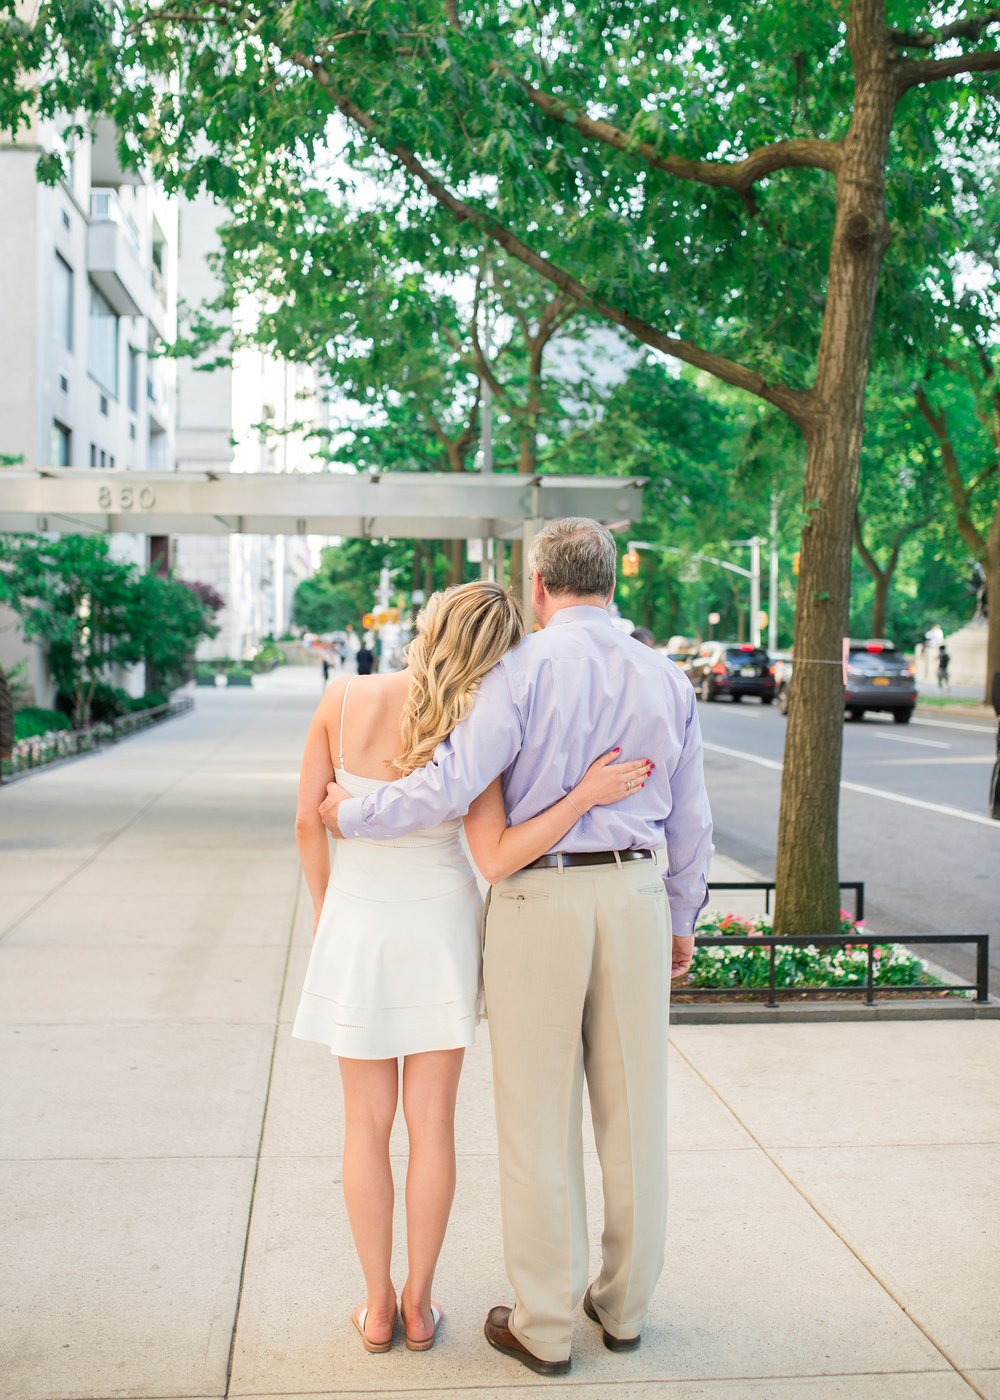 father.daughter.new.york.city.fathers.day.flytographer